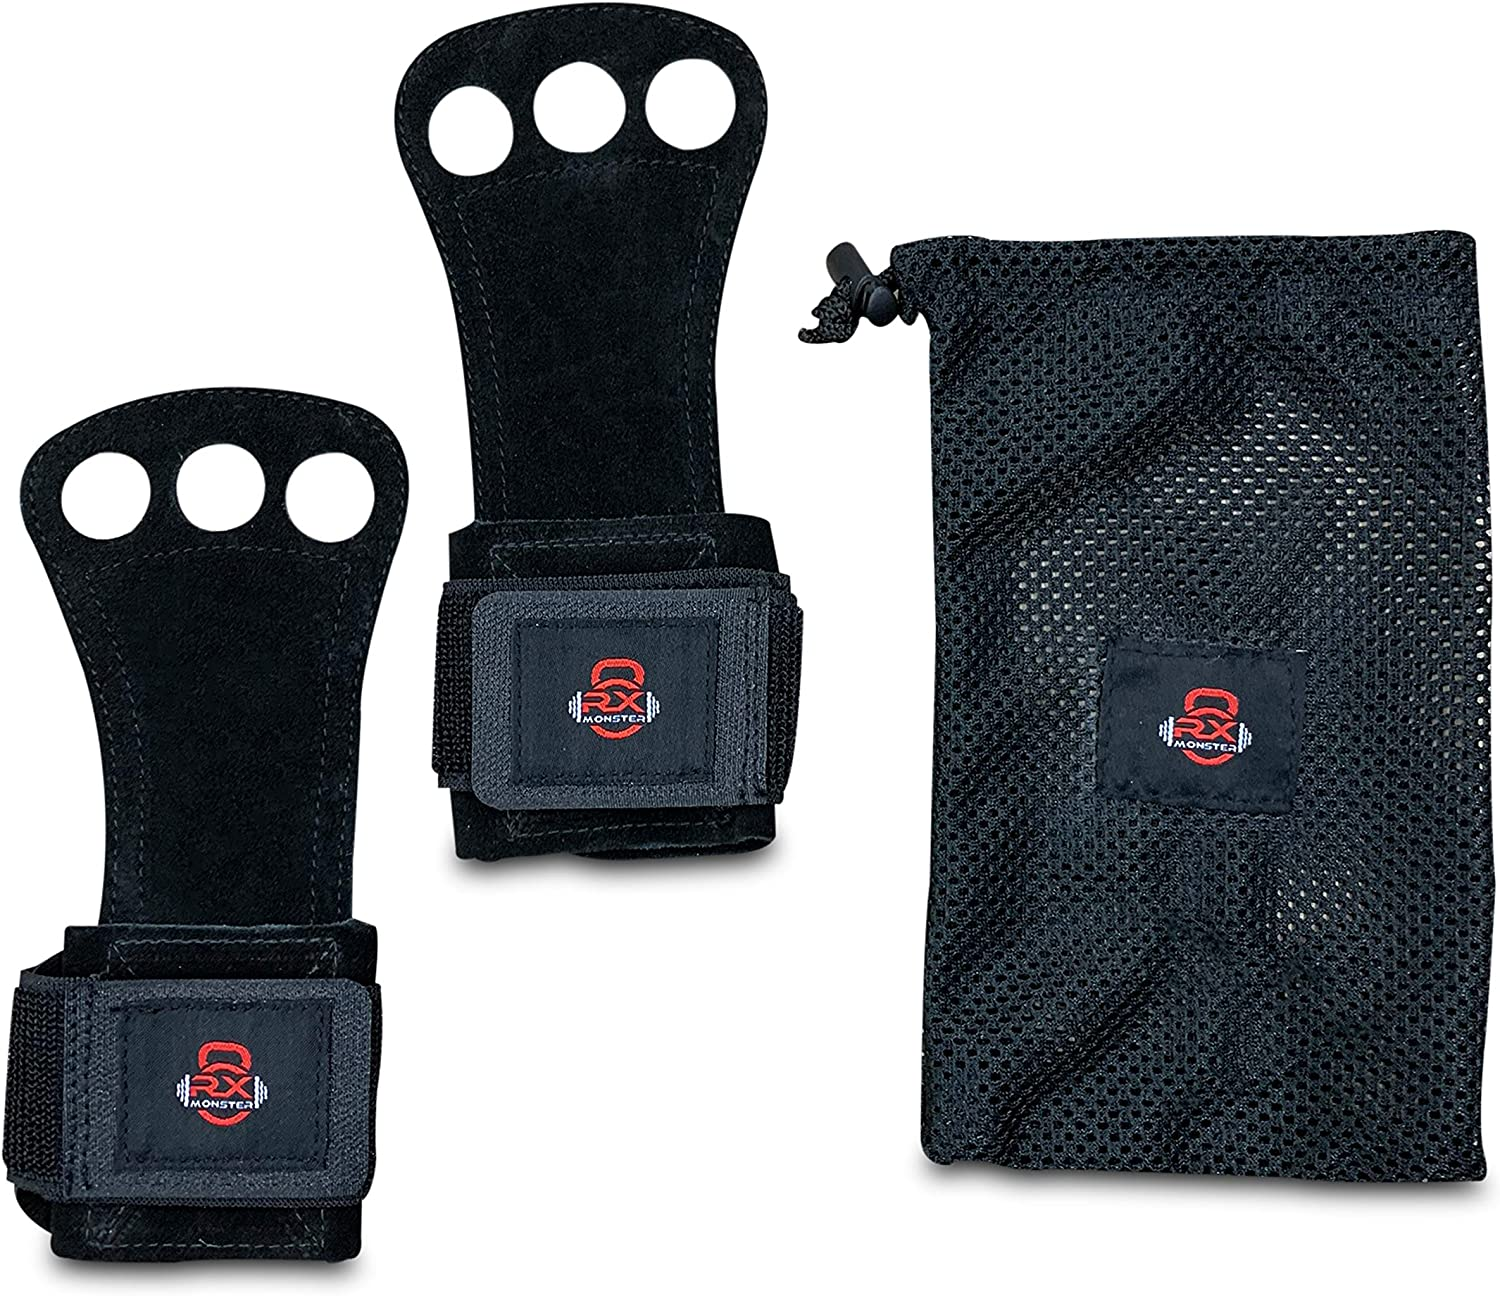 RX Monster 3 Hole Cross Finally resale start Fitness Max 52% OFF Grips Hand Gloves Gymnas and for